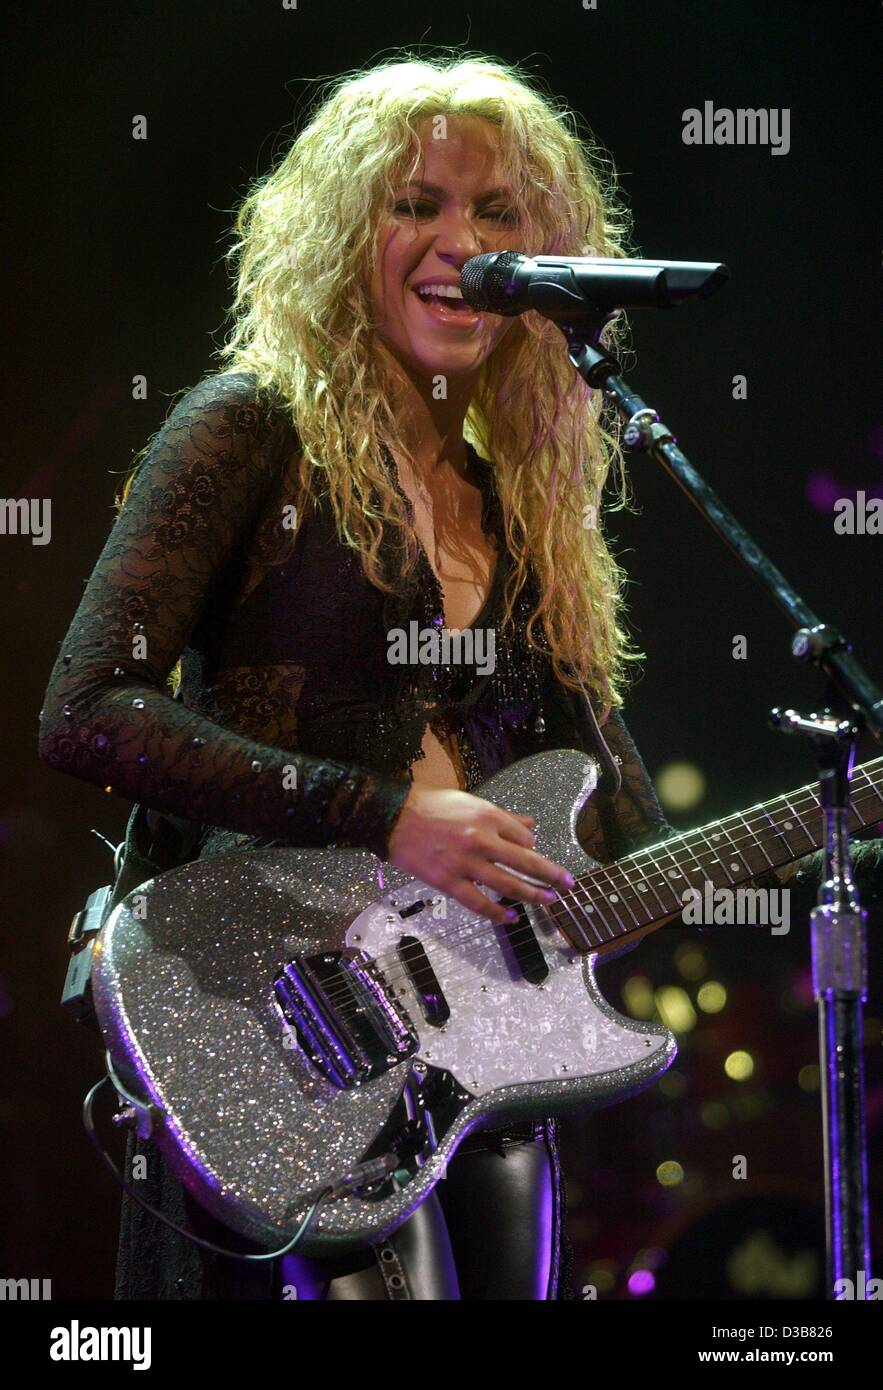 (dpa) - Colombian singer Shakira ('Whenever, Wherever', 'Underneath Your Clothes') performs during - Stock Image